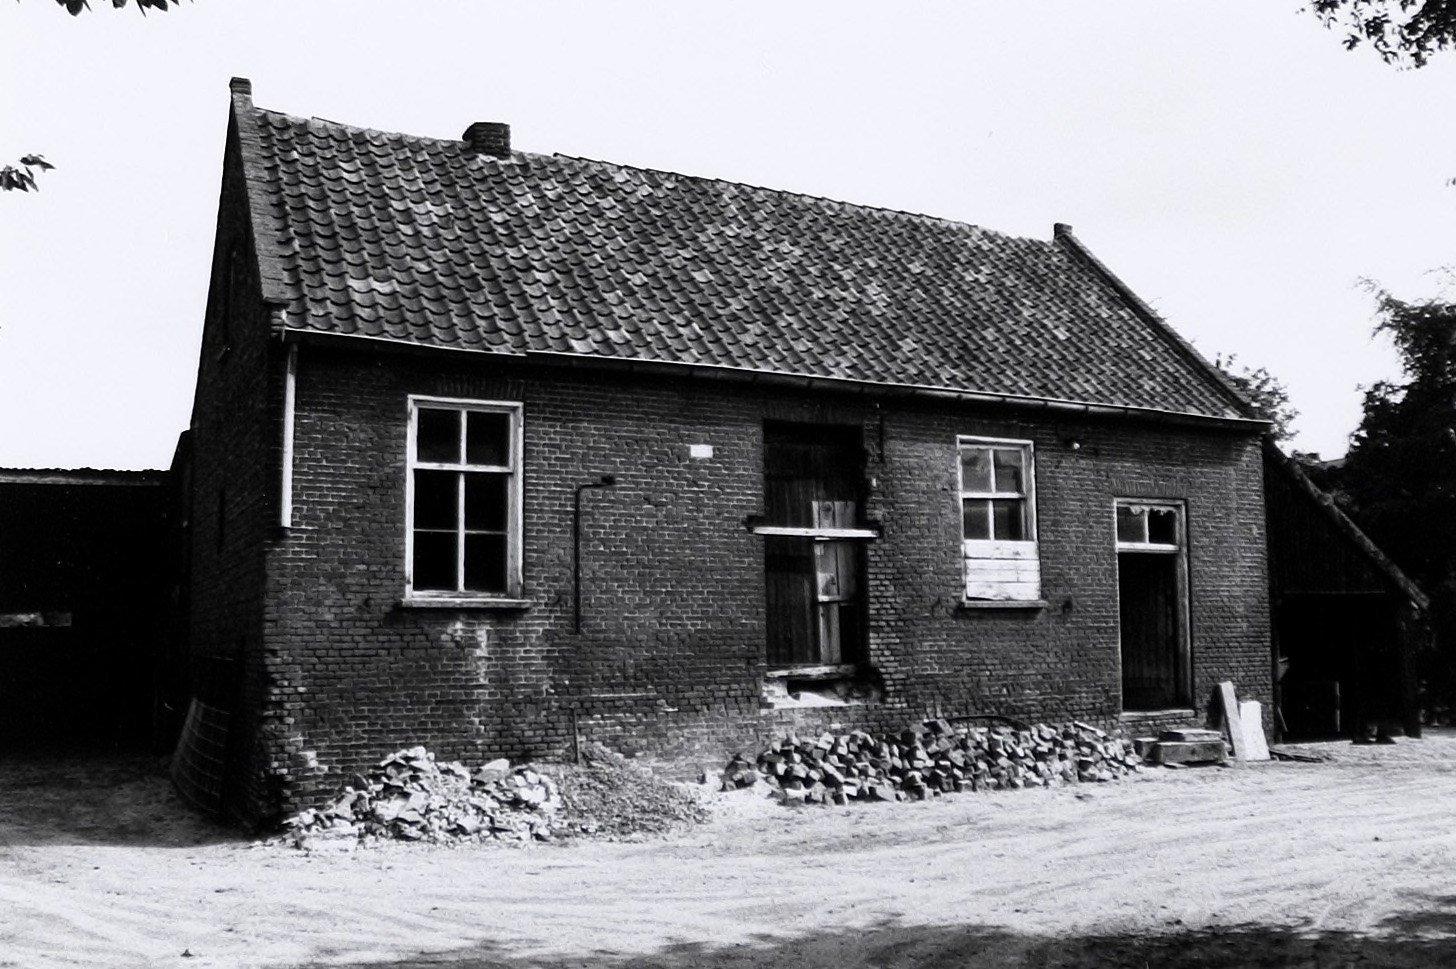 Datering 1990. oude-boterfabriek